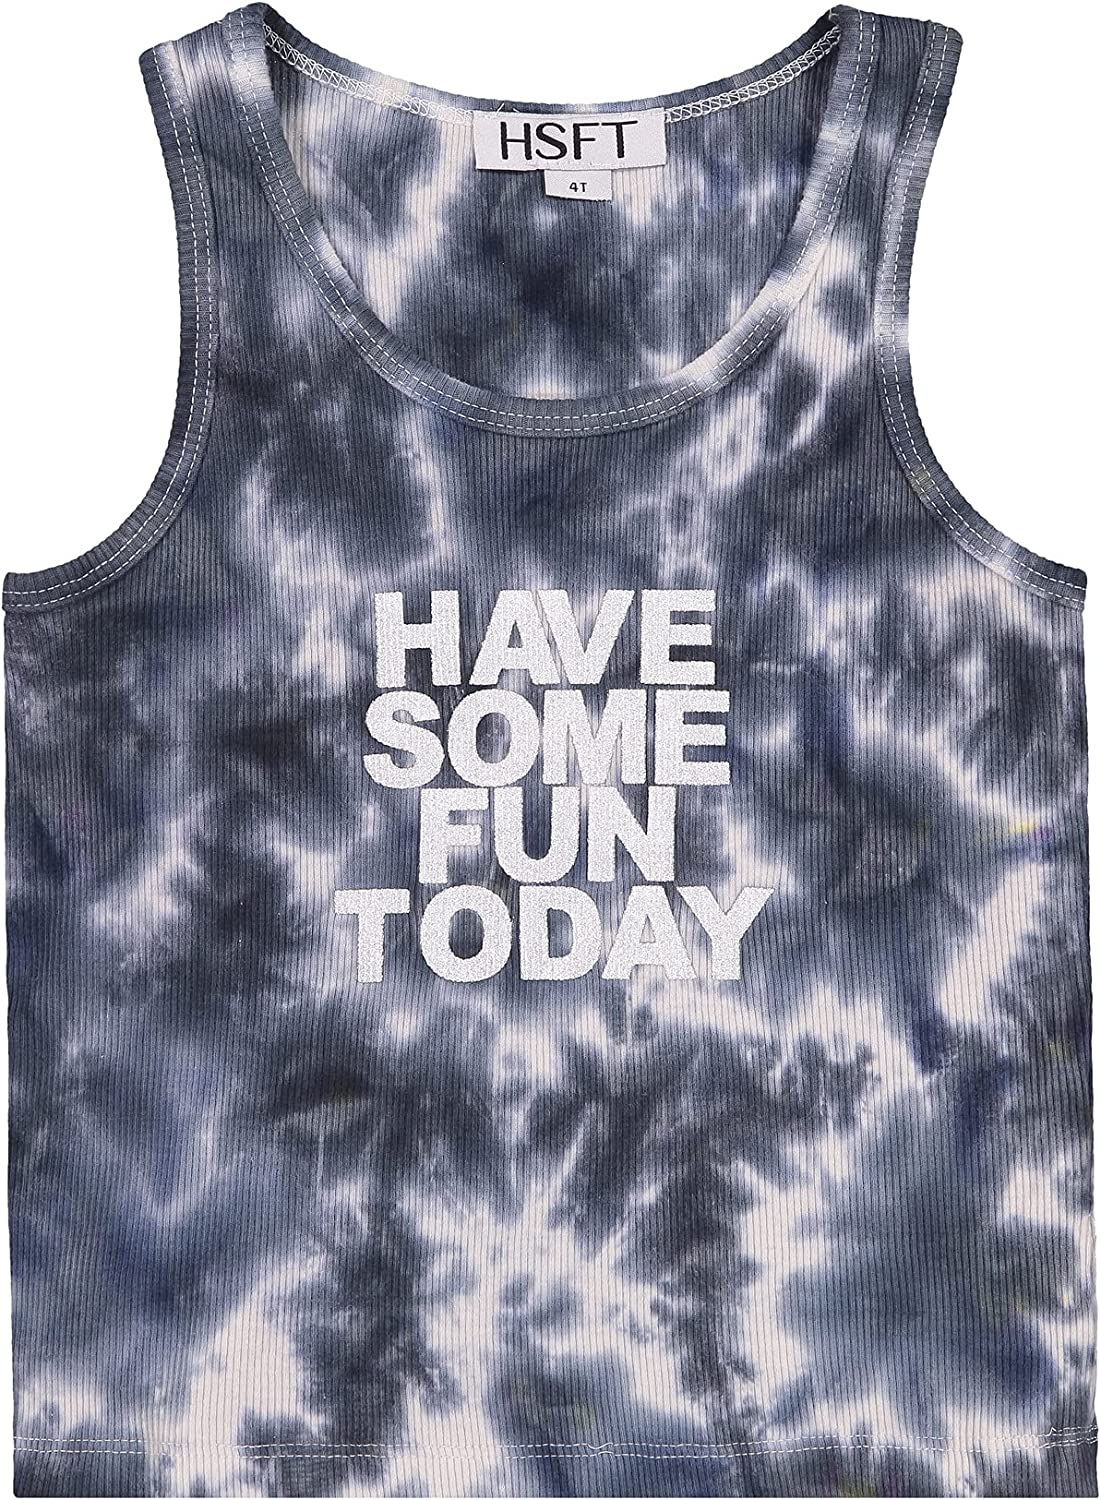 Have Some Finally resale start Fun Today Infant Top Cute Omaha Mall Rib Tank Comfortable